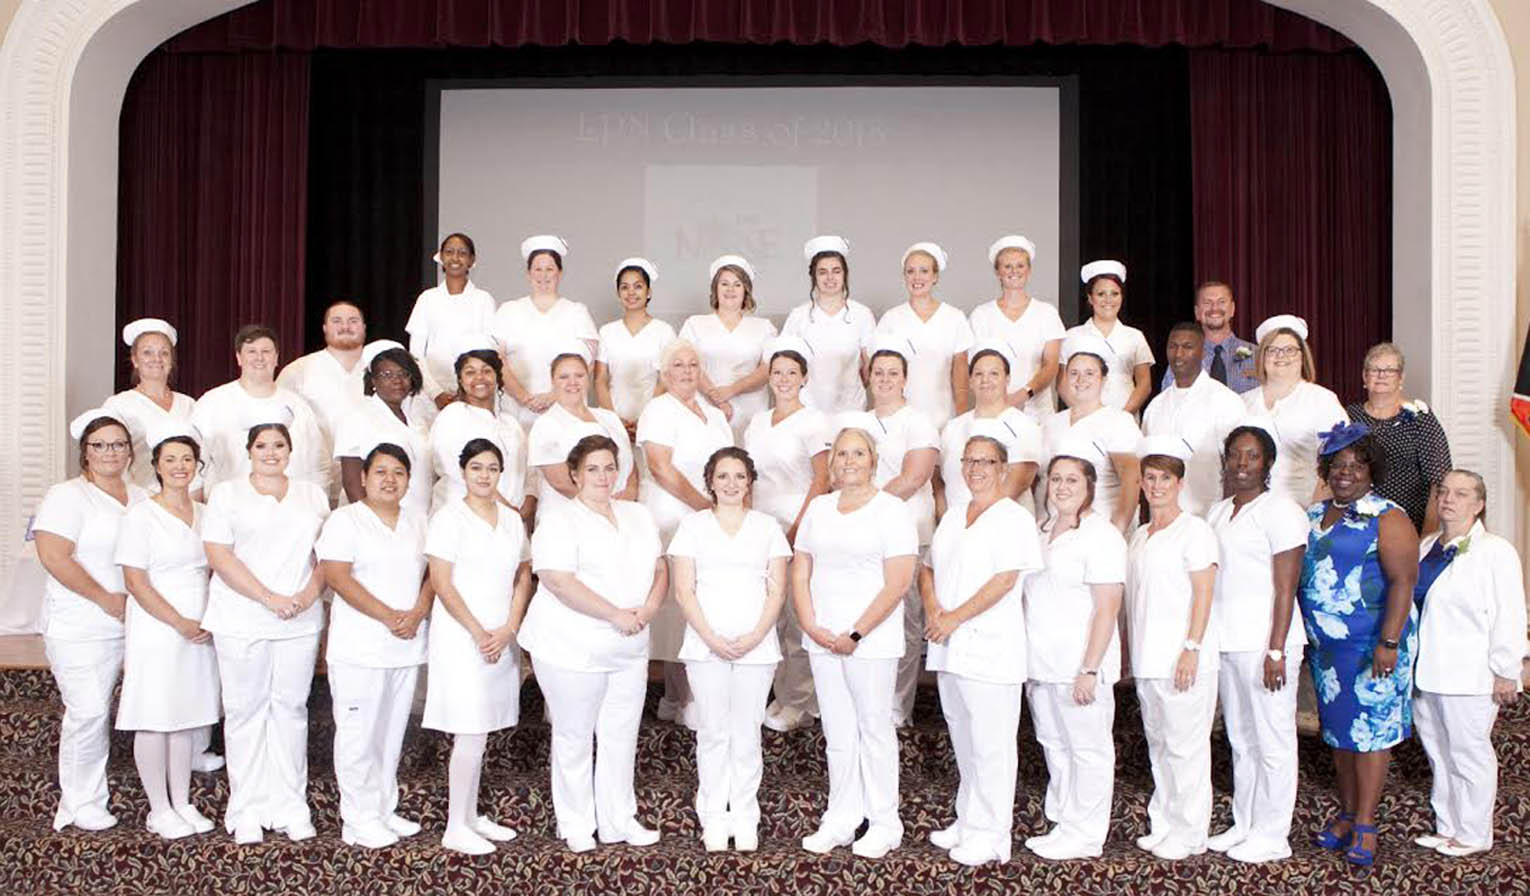 Click to enlarge,  The Central Carolina Community College Louise L. Tuller School of Nursing Practical Nursing program held a Pinning and Candle Lighting Ceremony for the Class of 2018 on Monday, July 23, at Campbell University's Turner Auditorium.